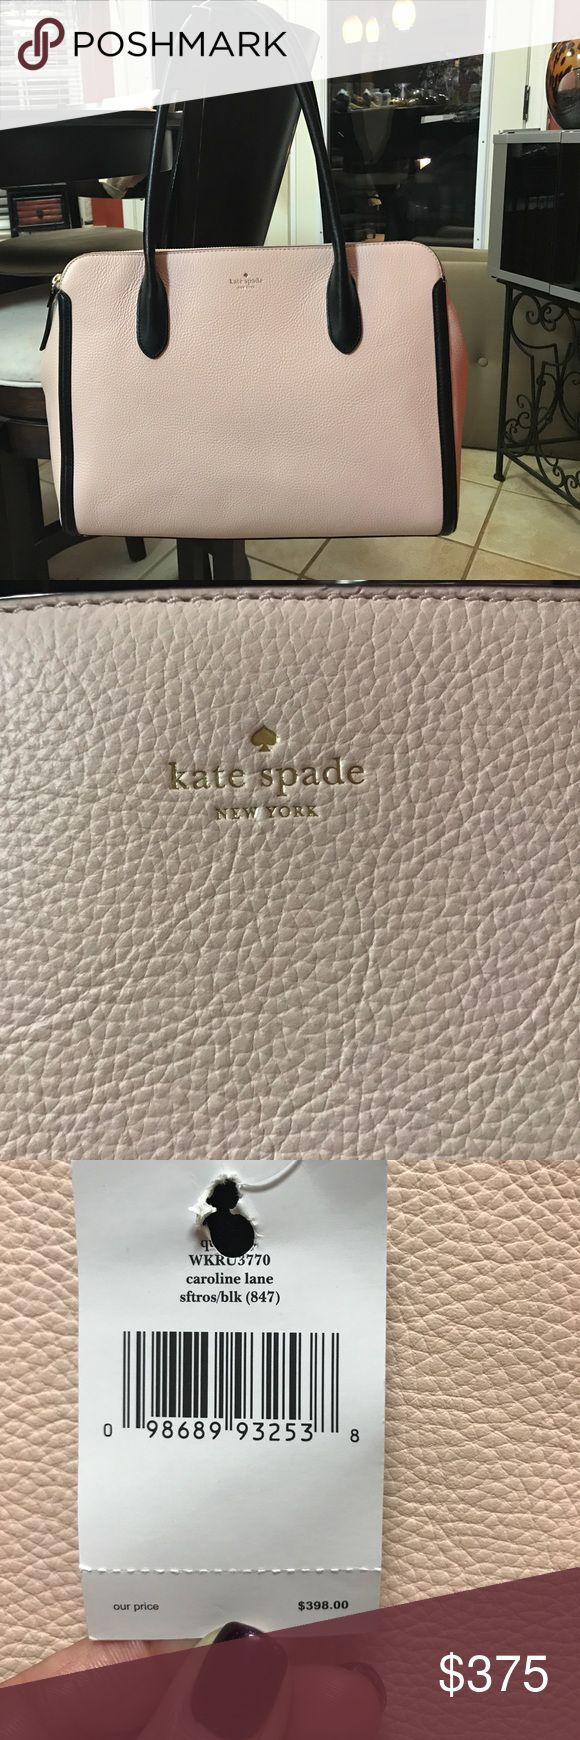 Kate Spade Bag 🔥Fall sale🔥 NWT!!!! 💯% authentic Kate Spade bag. Pink colored handbag with gold zipper accents and black handles and trim. Gorgeous bag retails for $398. All tags paper stuffing and brochure information are included. Price is firm!!!!! No trades🚫!!!! kate spade Bags Shoulder Bags